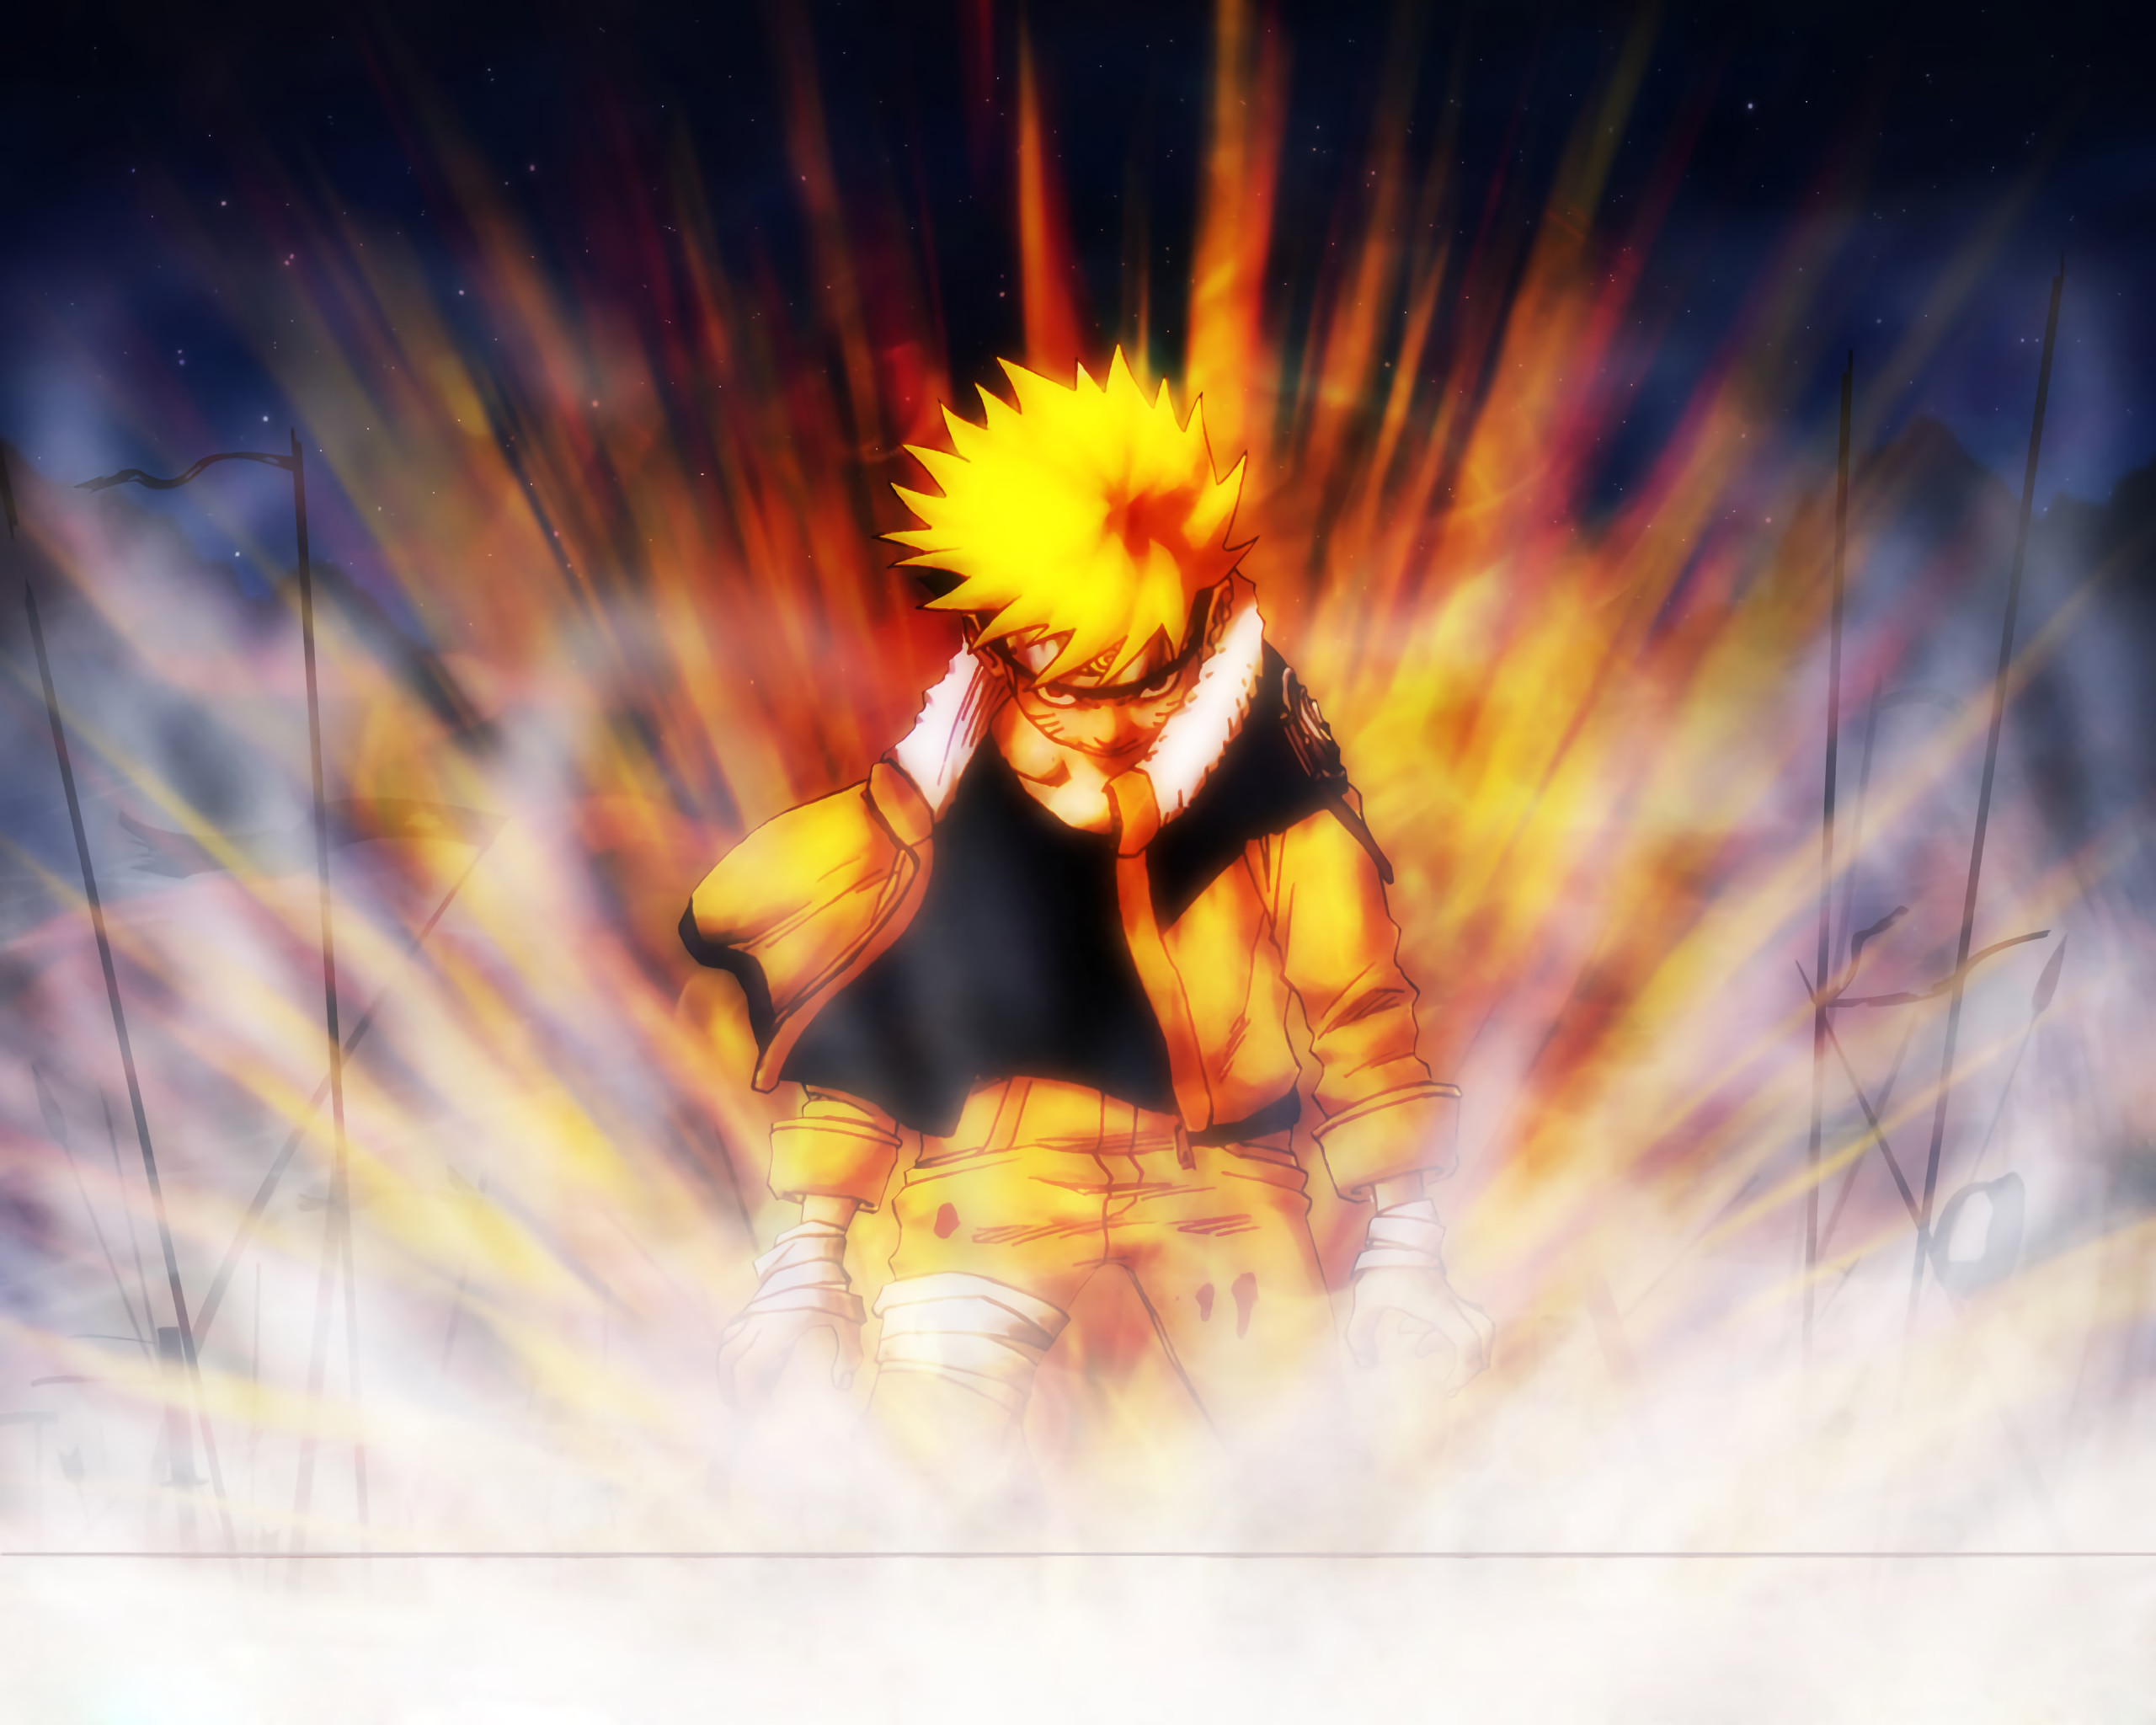 Naruto Vs Sasuke 4k Wallpaper High Quality » Cinema ... |Naruto High Quality Wallpaper